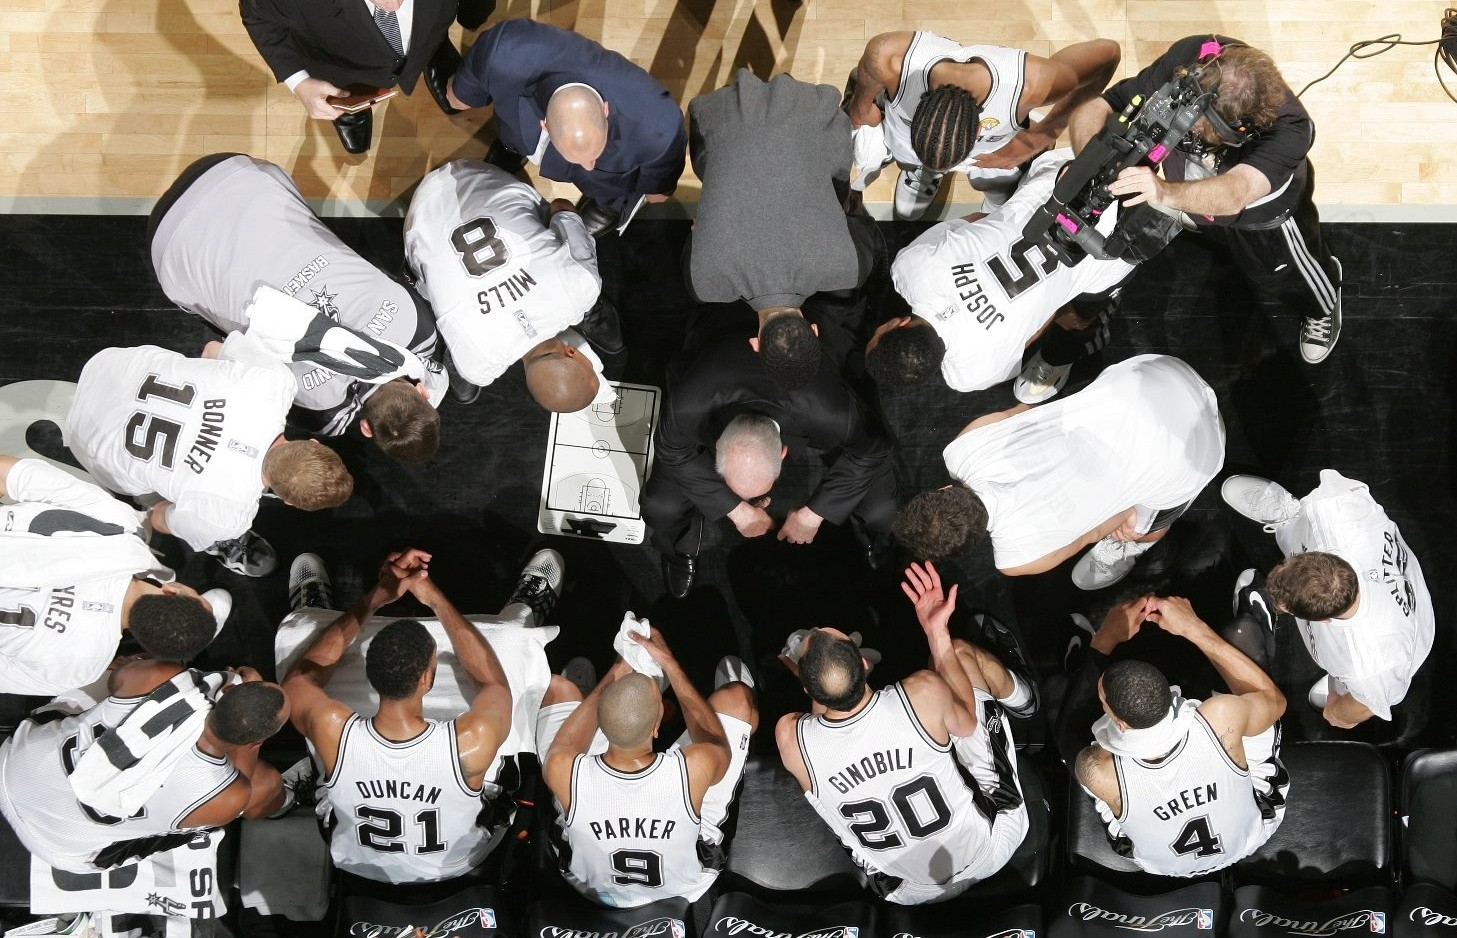 What can Employee Advocacy Programs Learn from a Great Basketball Team